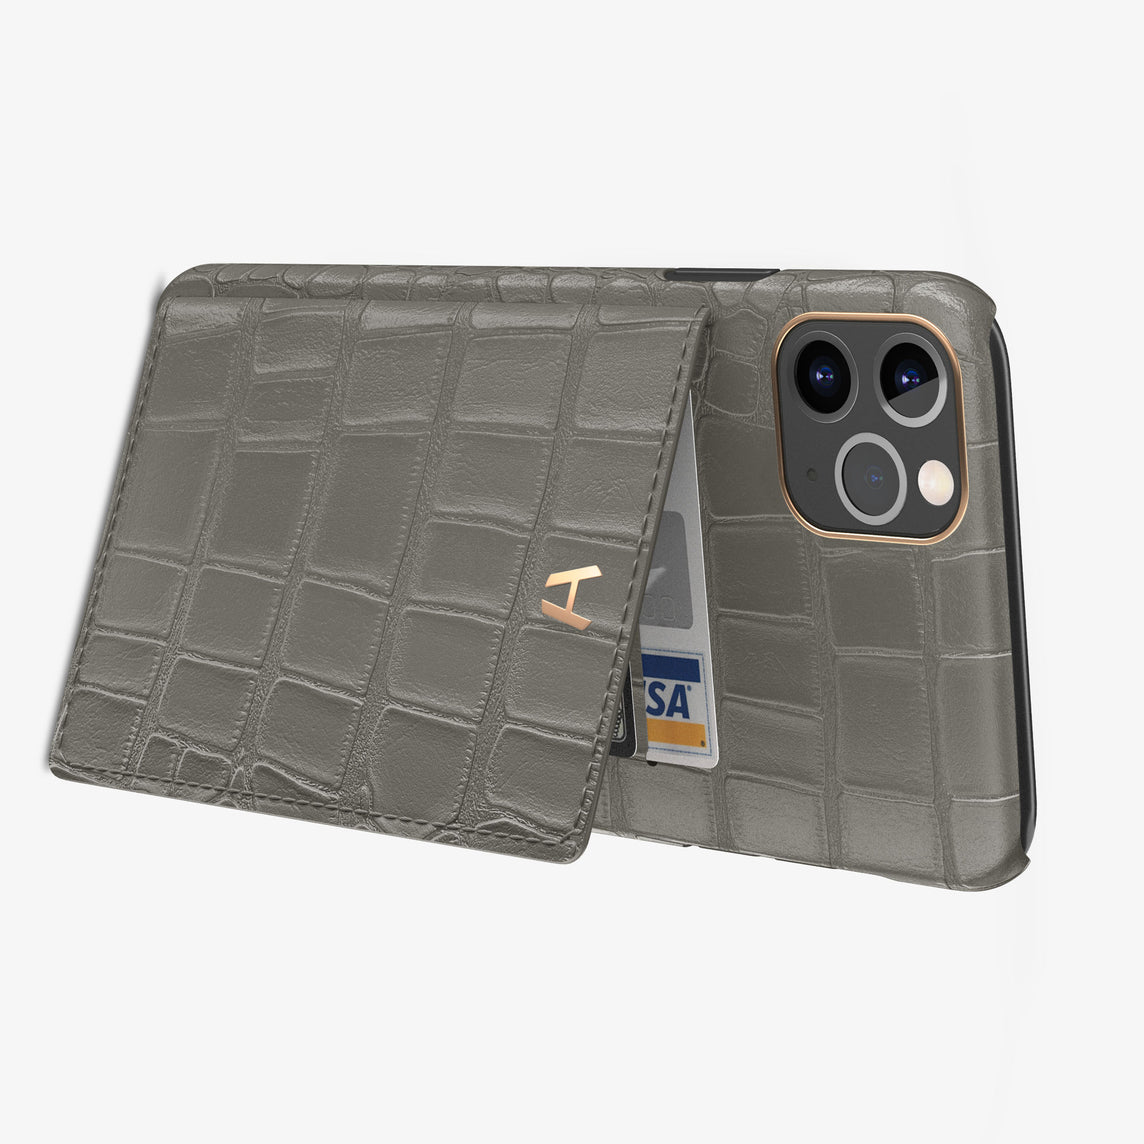 Alligator Card Holder Flap Case iPhone 11 Pro Max | Pearl Grey - Rose Gold